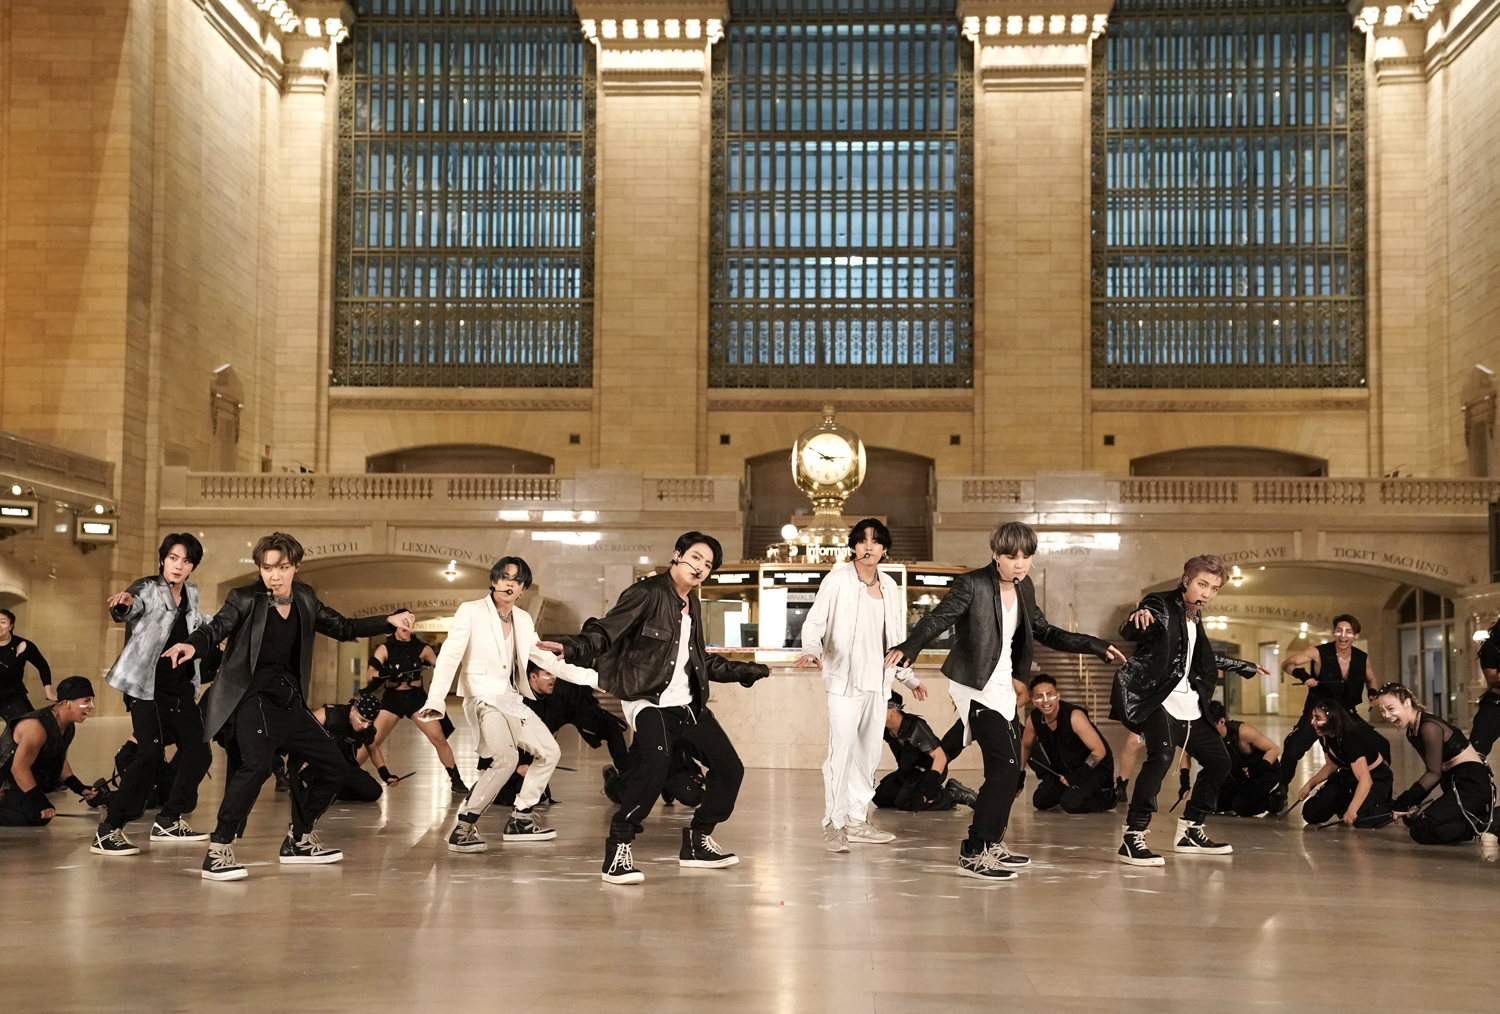 BTS performs in Grand Central Terminal